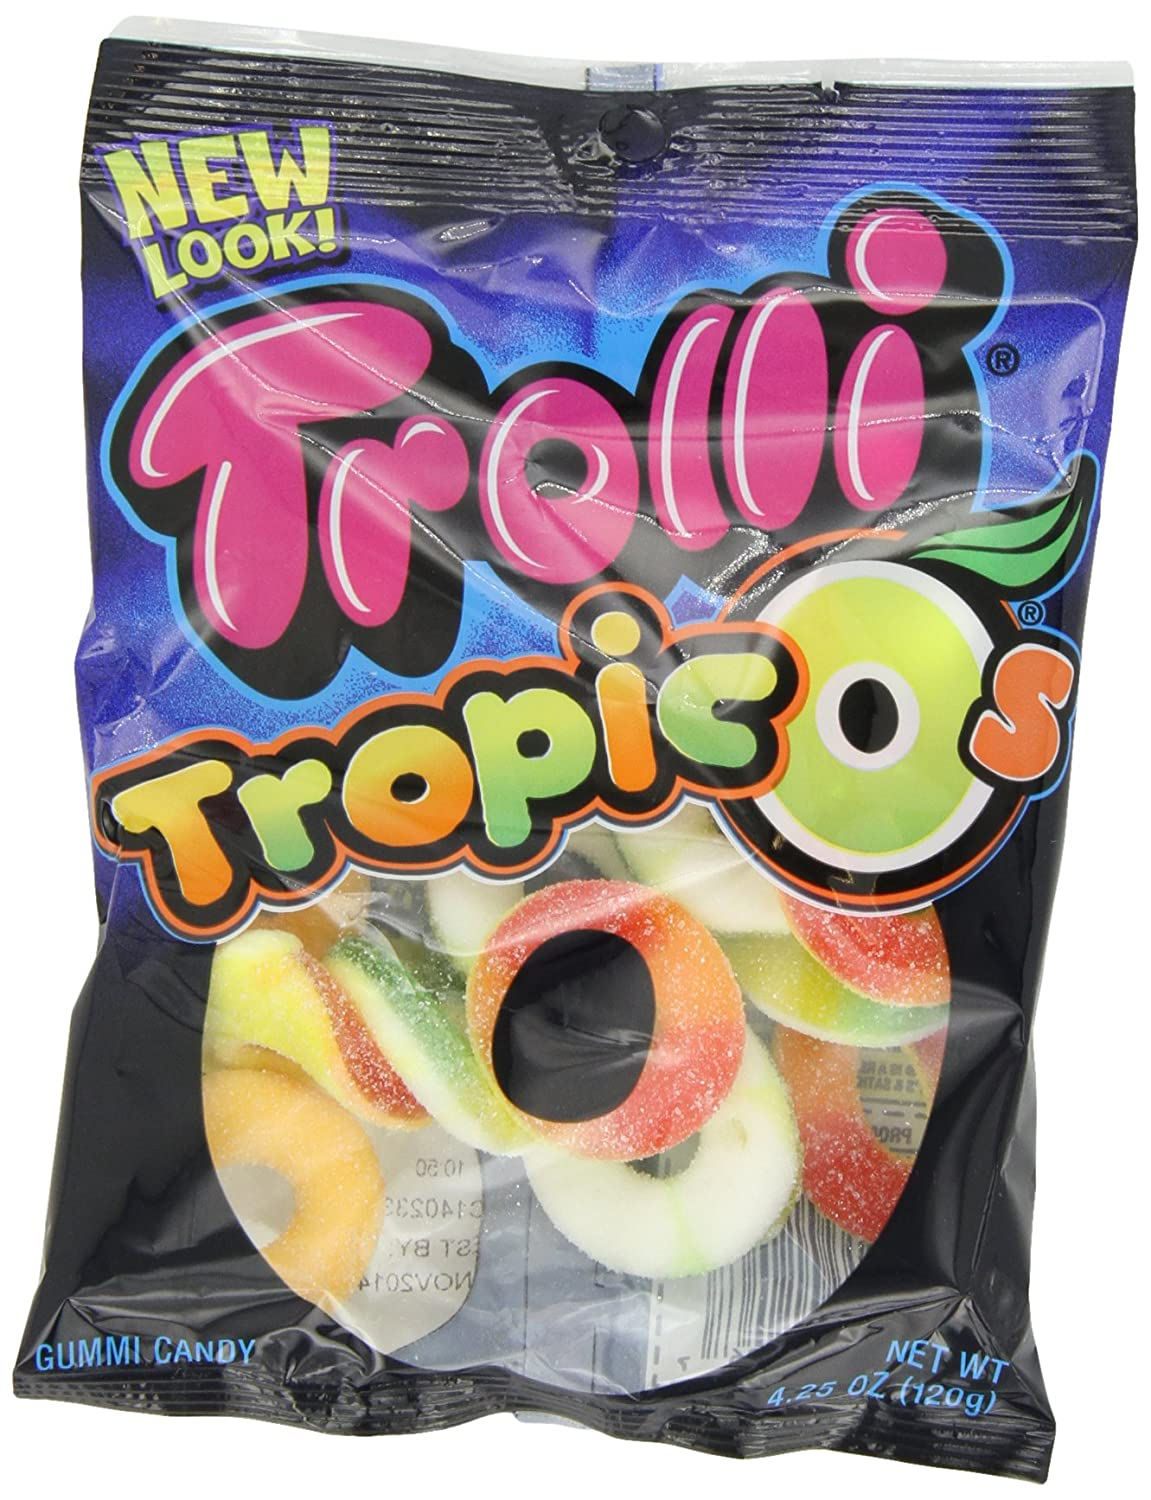 Trolli Tropic O's Gummy Candy, 4.25 Ounce Bag, Pack of 12